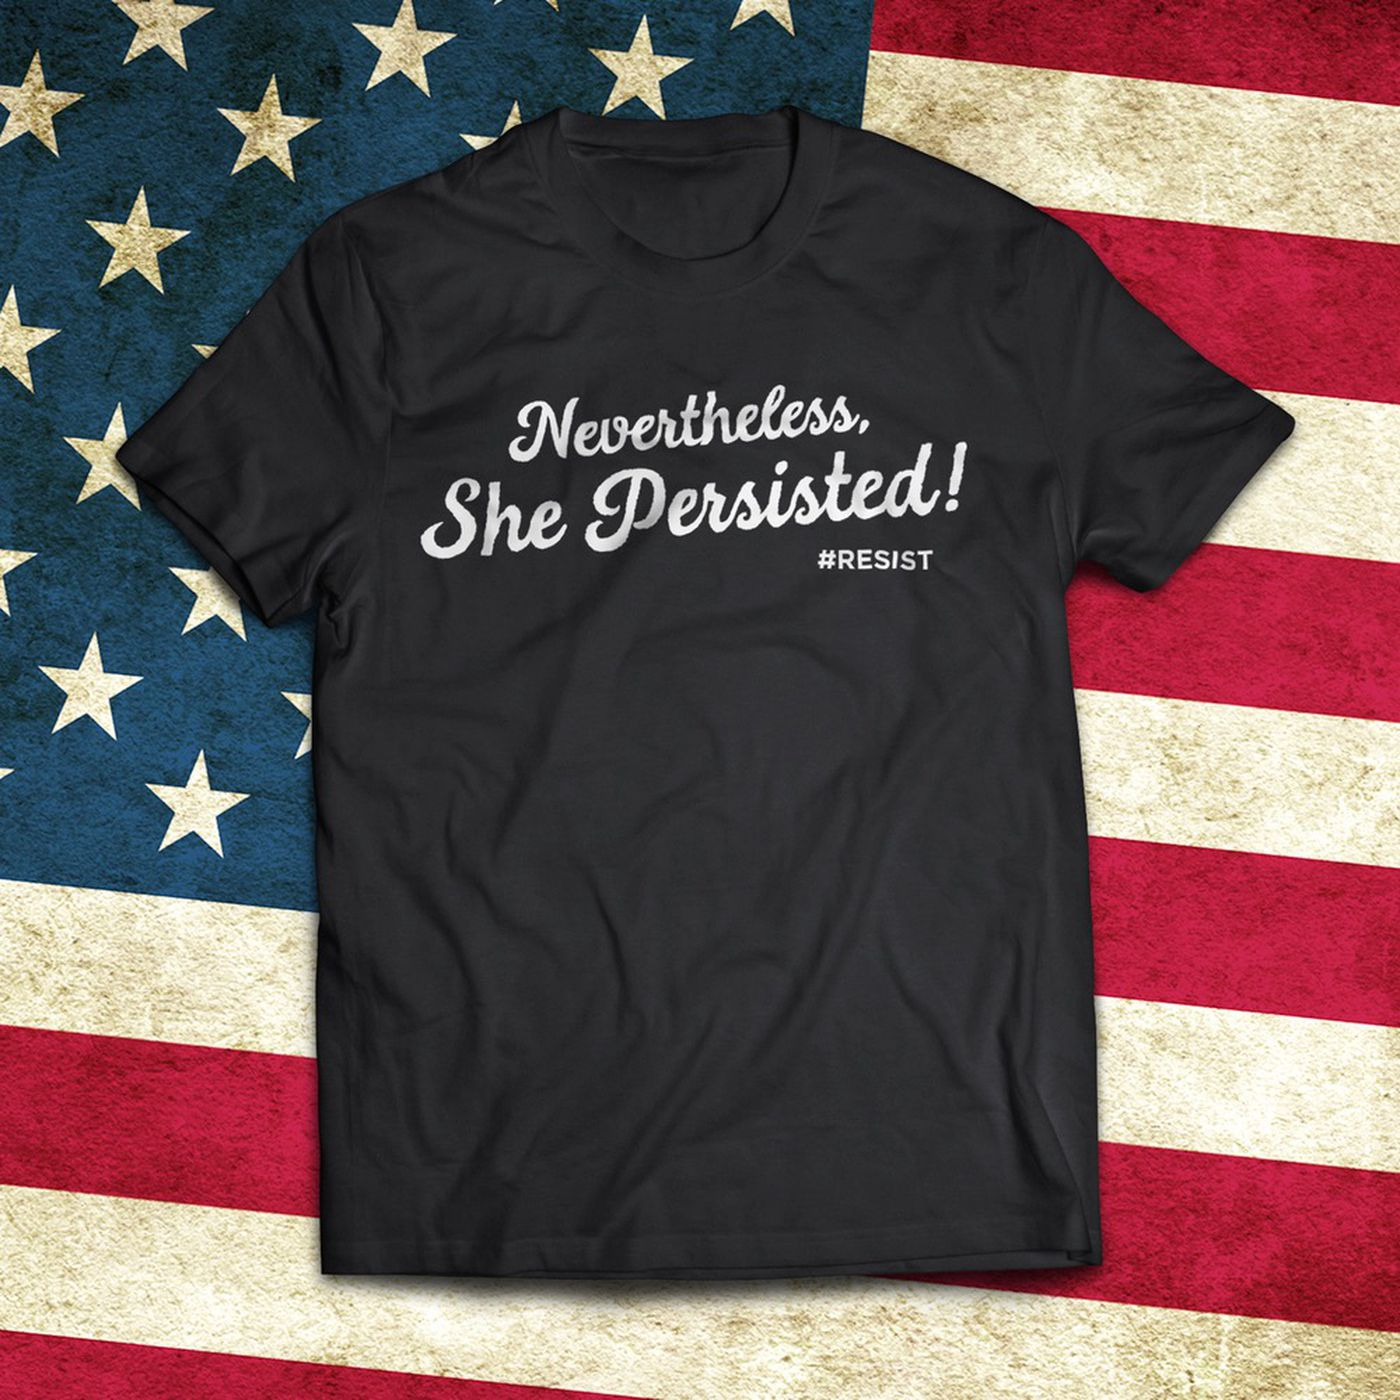 08bc38687 How 'Nevertheless, She Persisted' Went from Mitch McConnell's Lips to T- Shirts Everywhere